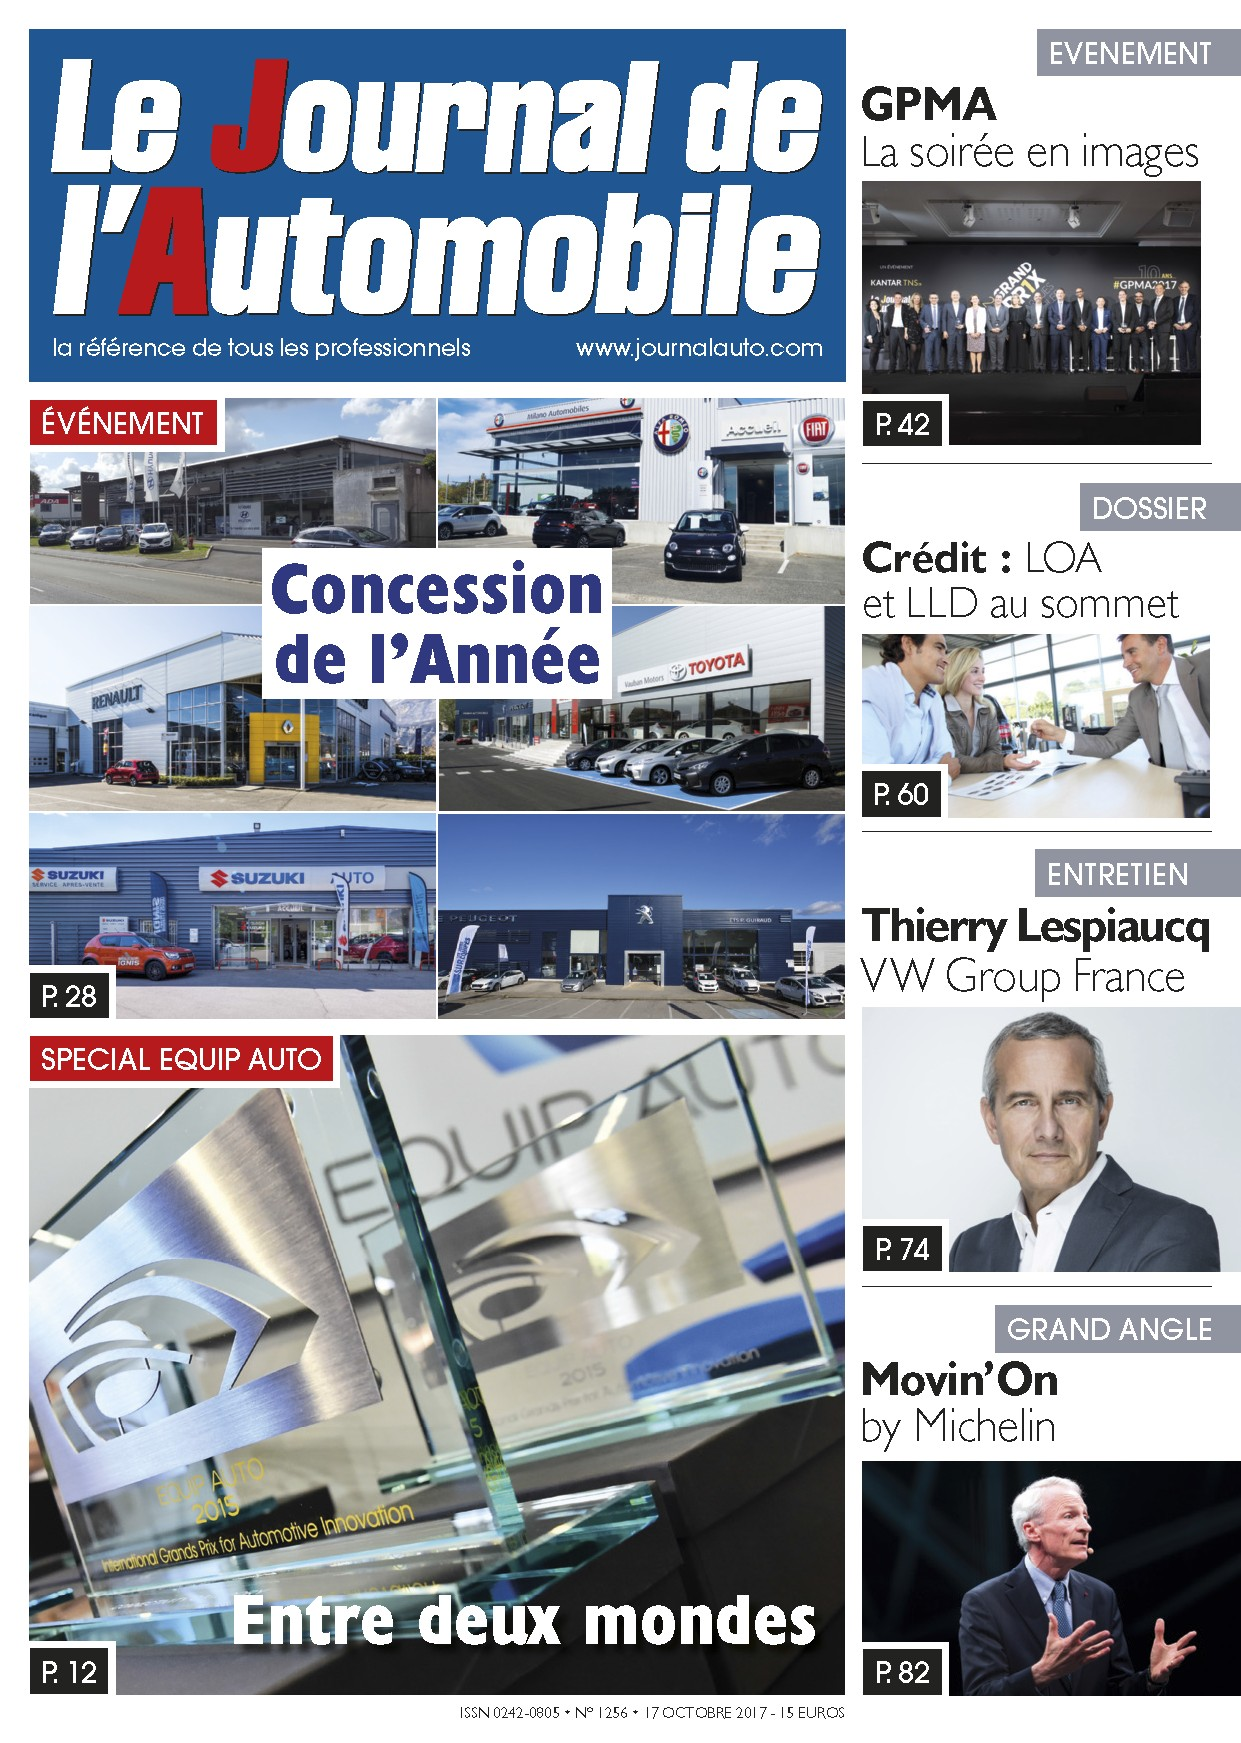 Le Journal de l'Automobile n°1256 ?>